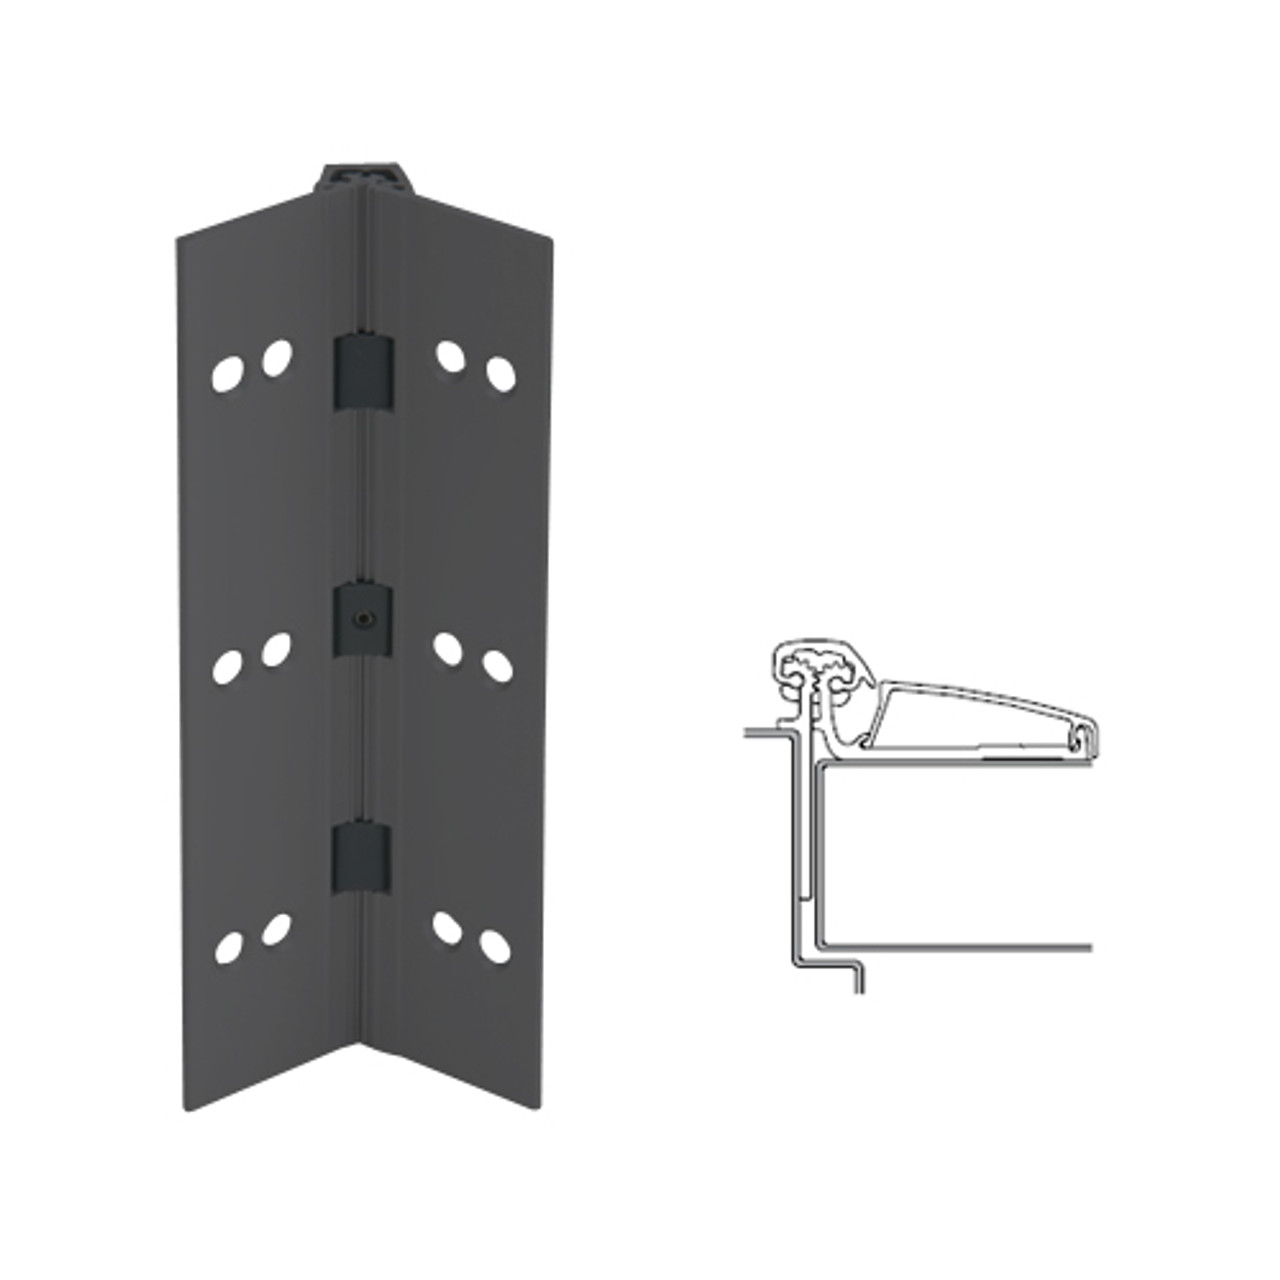 045XY-315AN-95 IVES Adjustable Half Surface Continuous Geared Hinges in Anodized Black